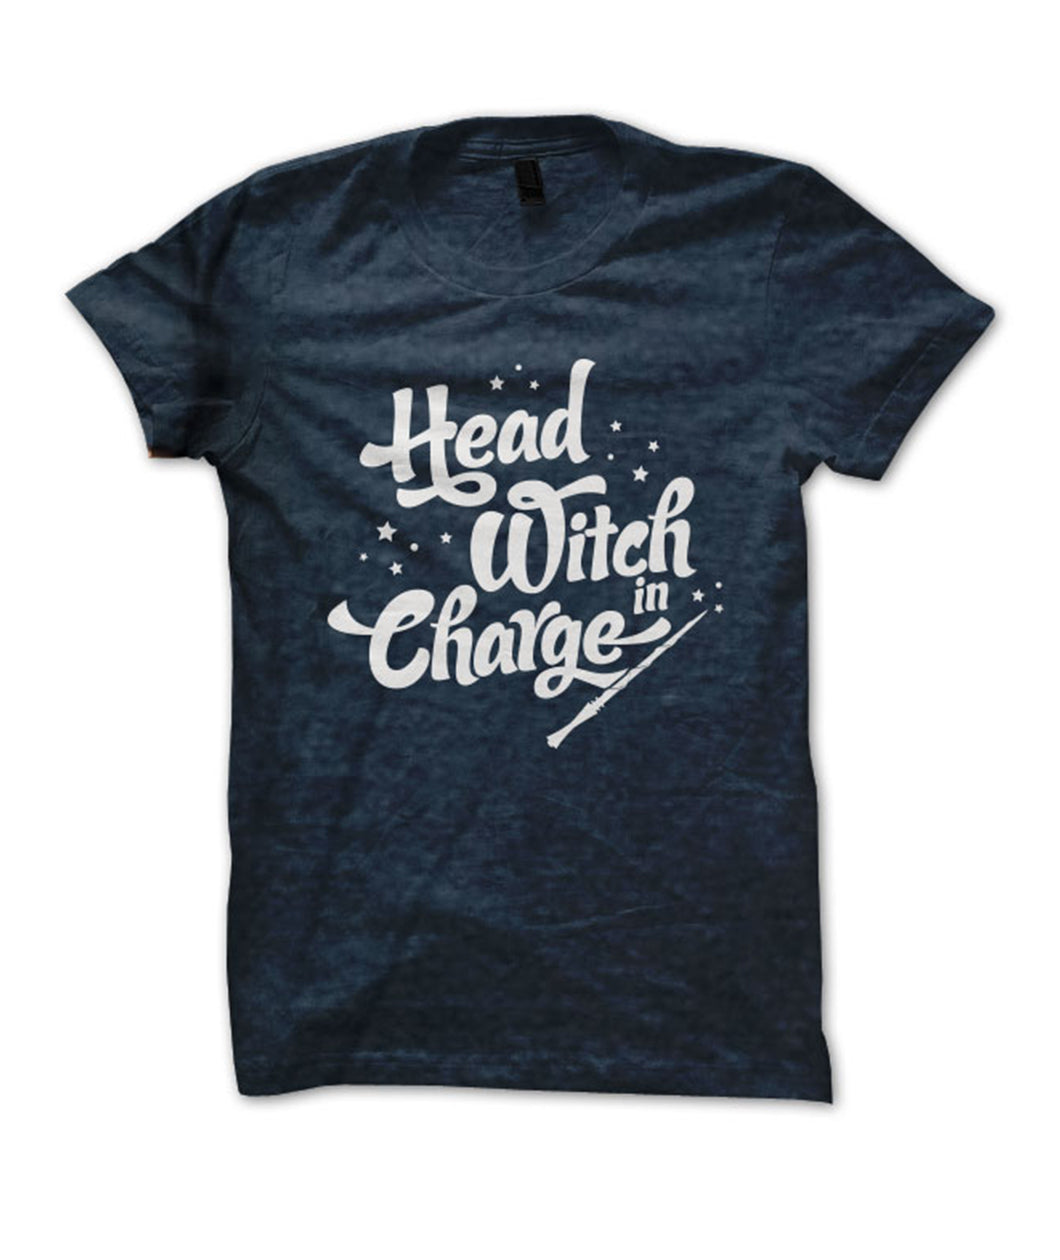 Head Witch in Charge Shirt